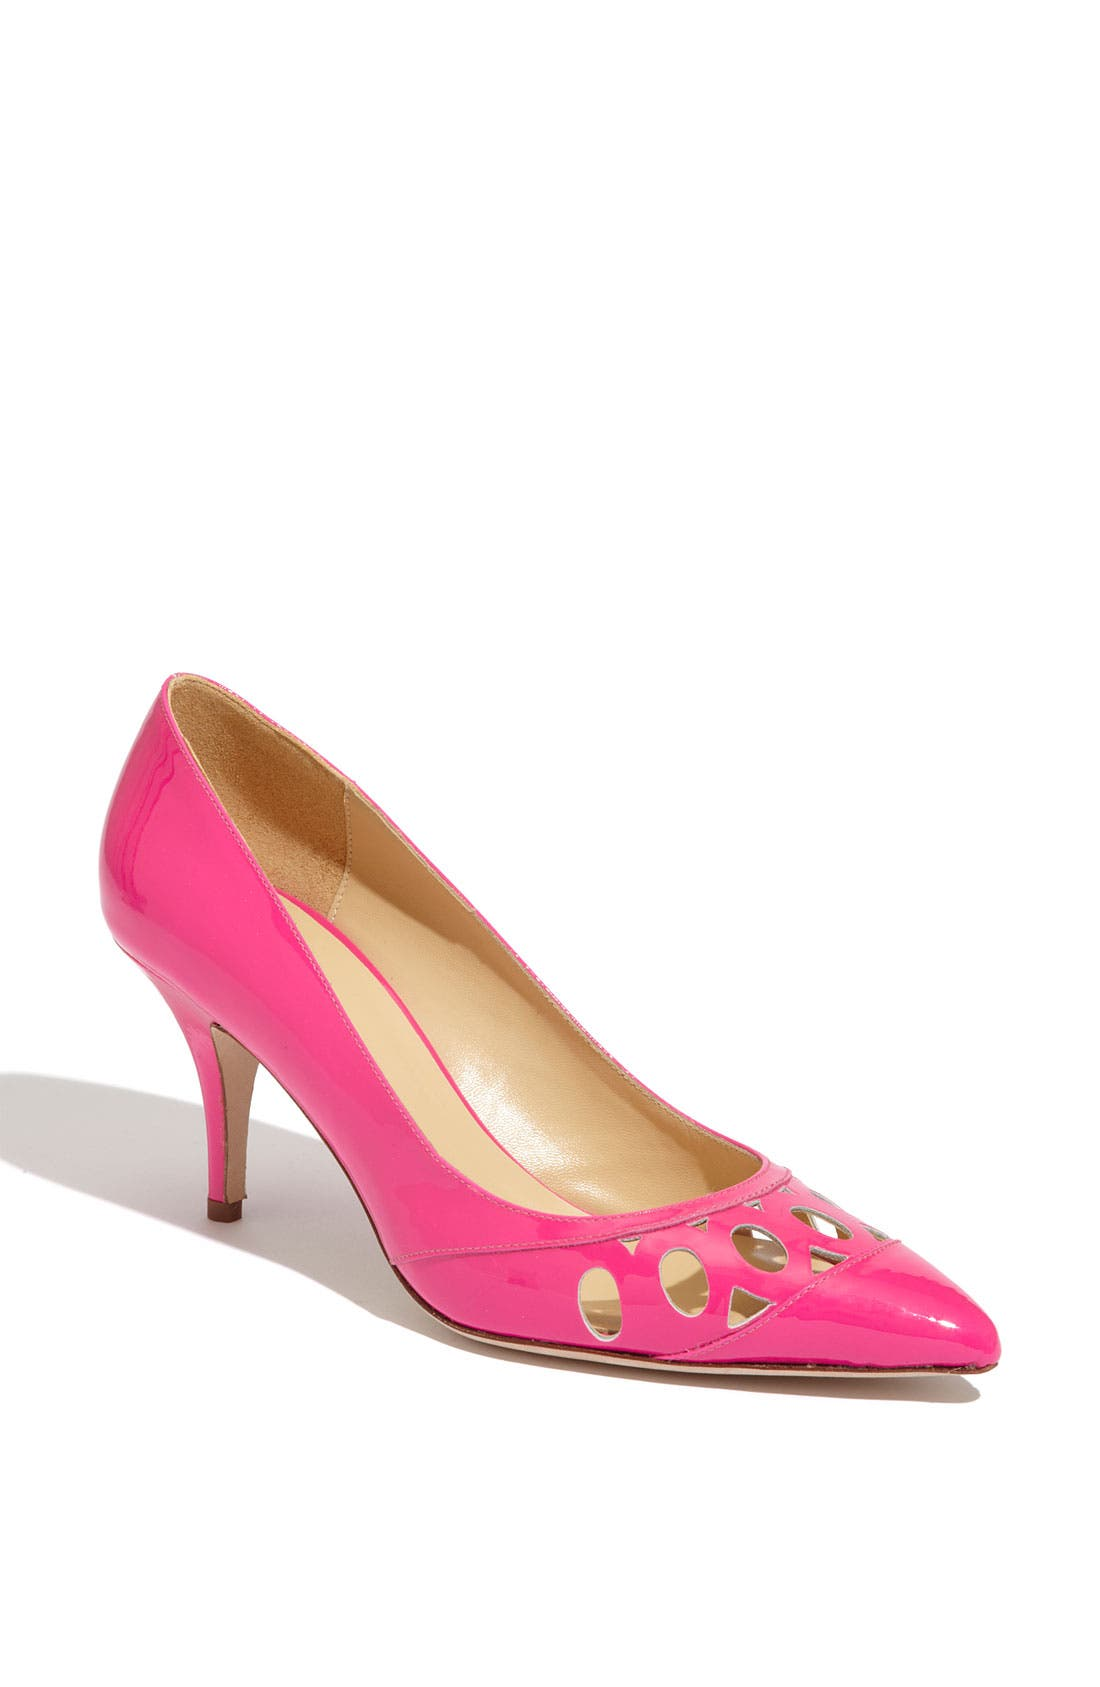 Alternate Image 1 Selected - kate spade new york 'thelma' pump